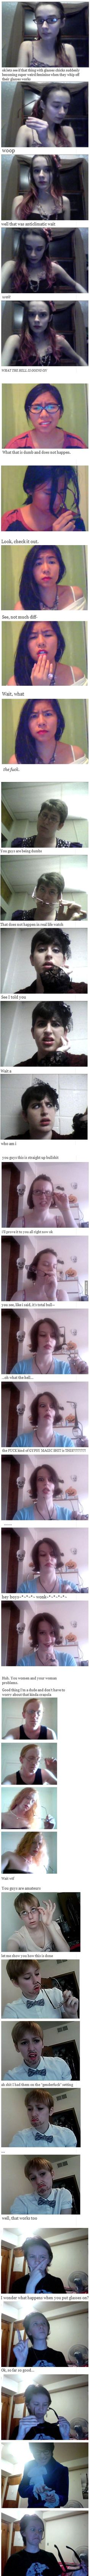 Taking off glasses makes you hotter. It's proven! - 9GAG